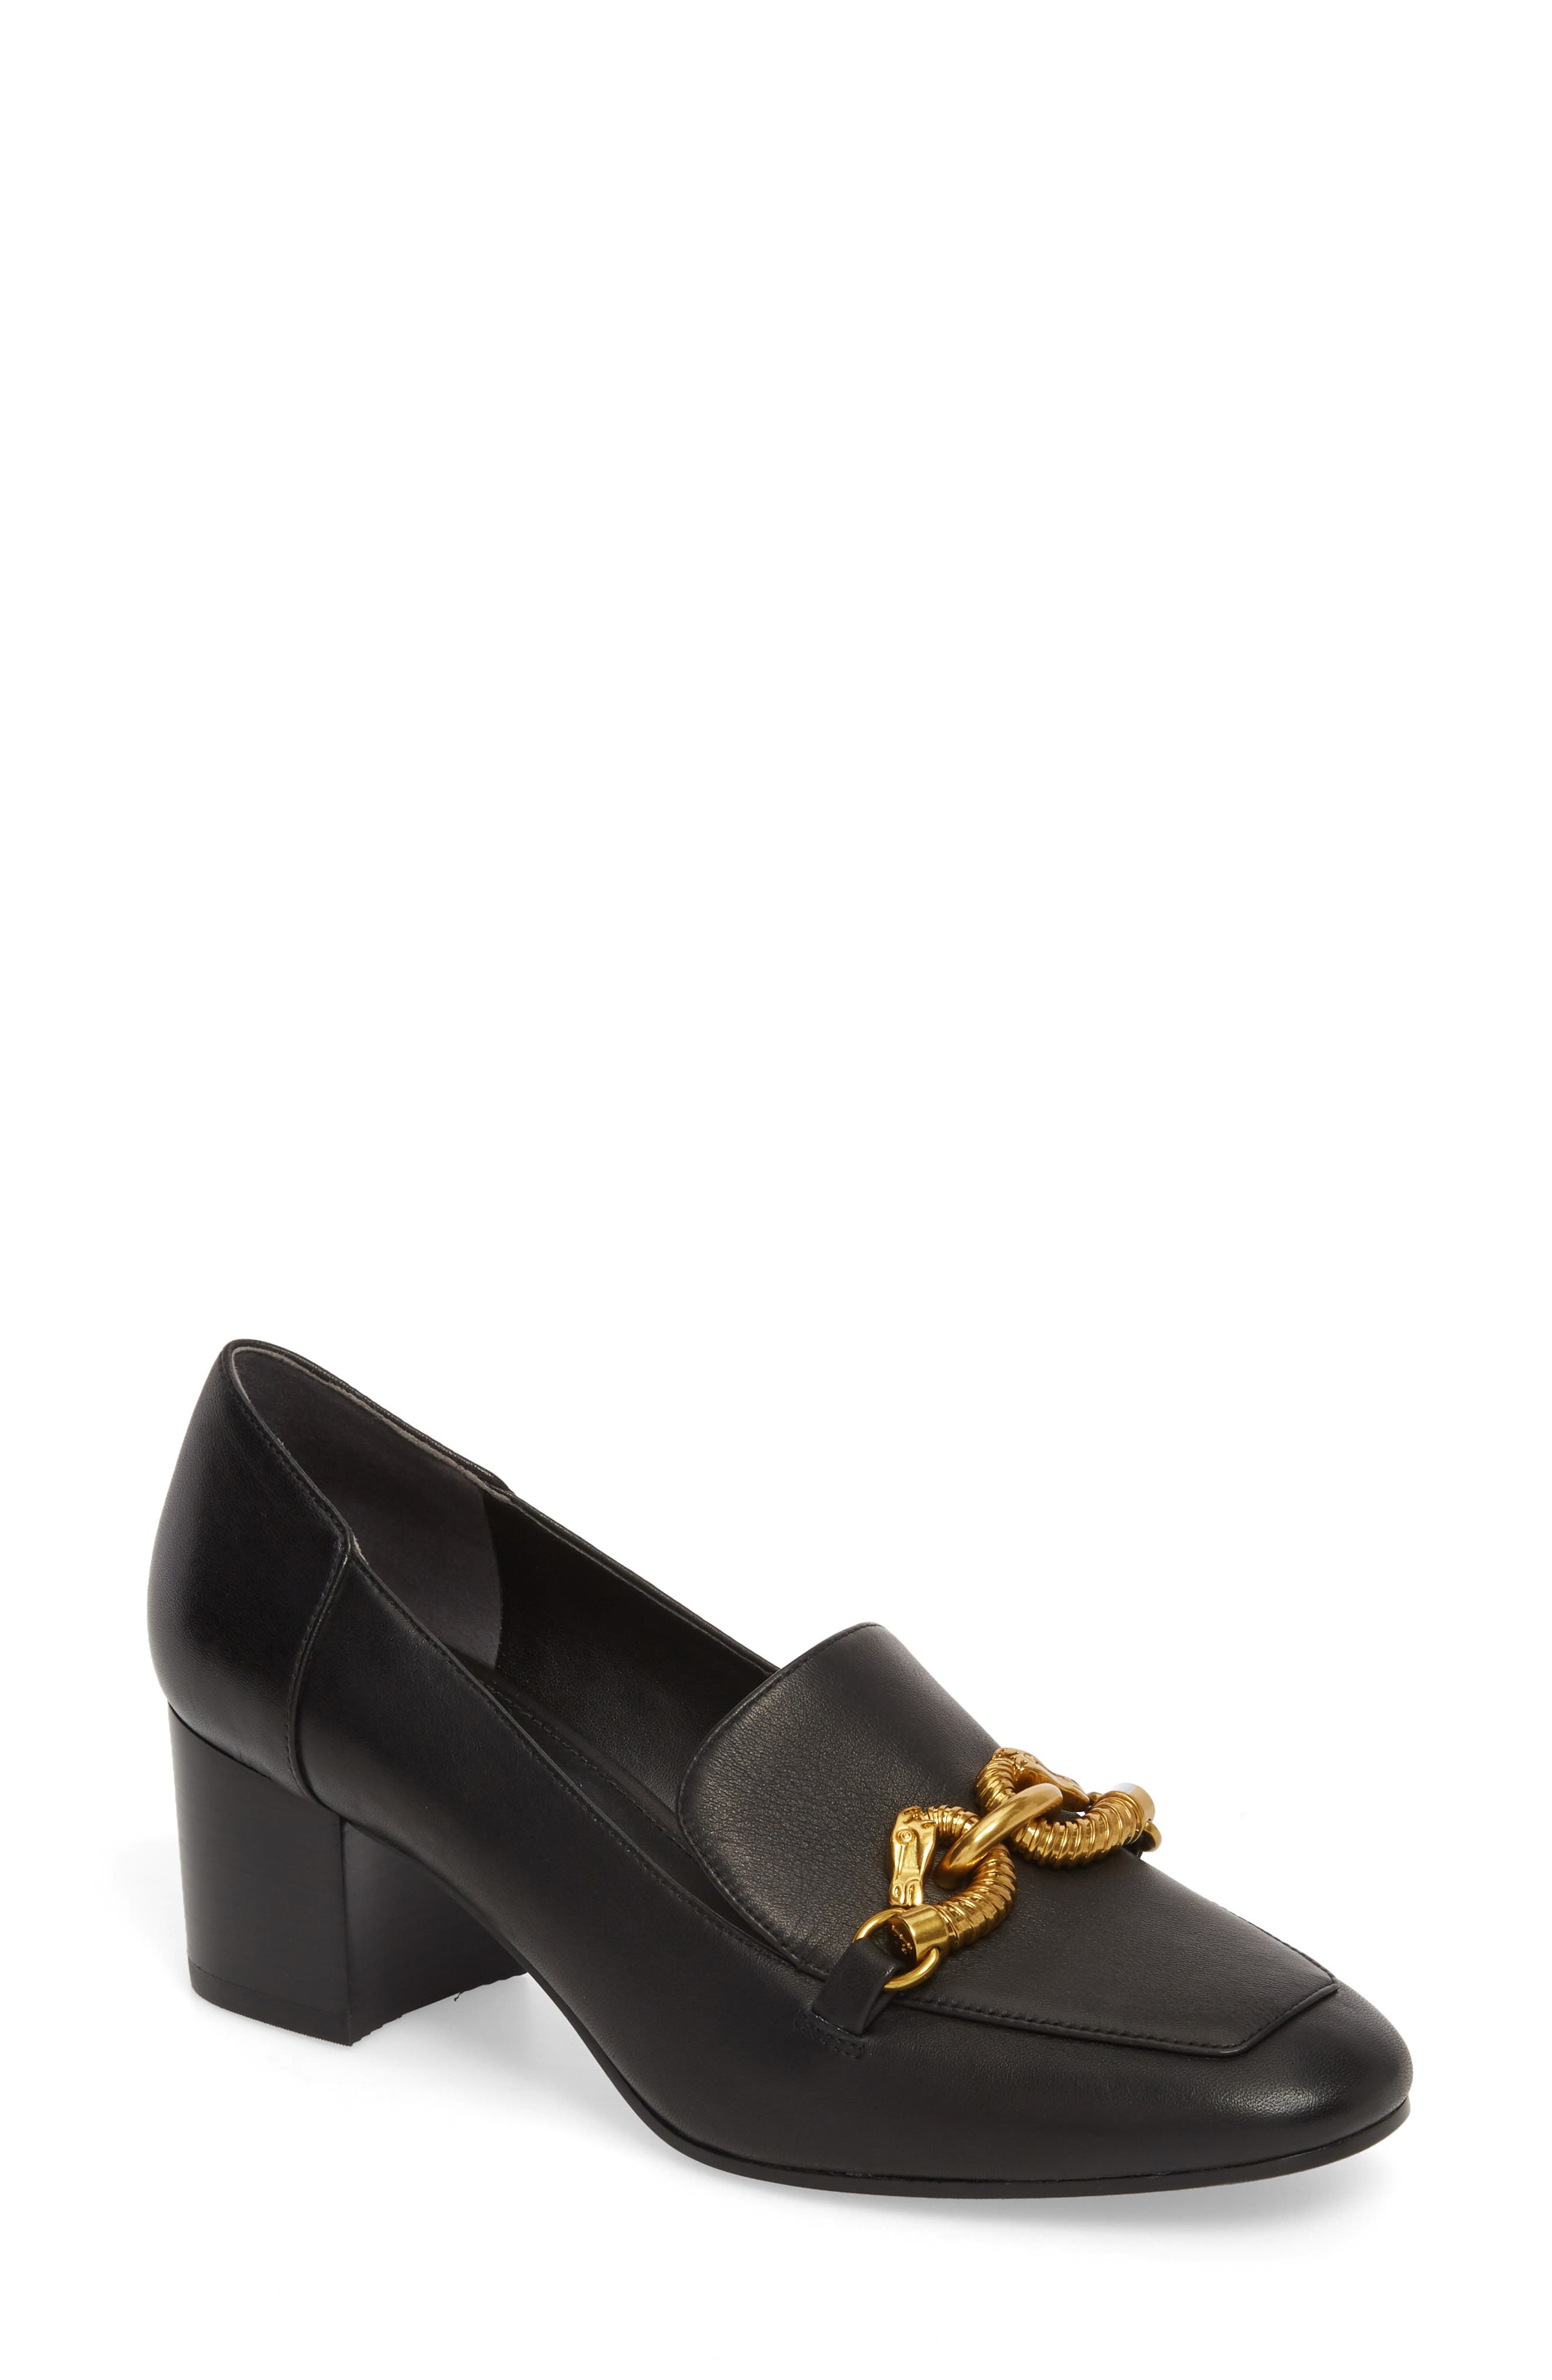 Jessa Horse Hardware Loafer Pump,                         Main,                         color, PERFECT BLACK